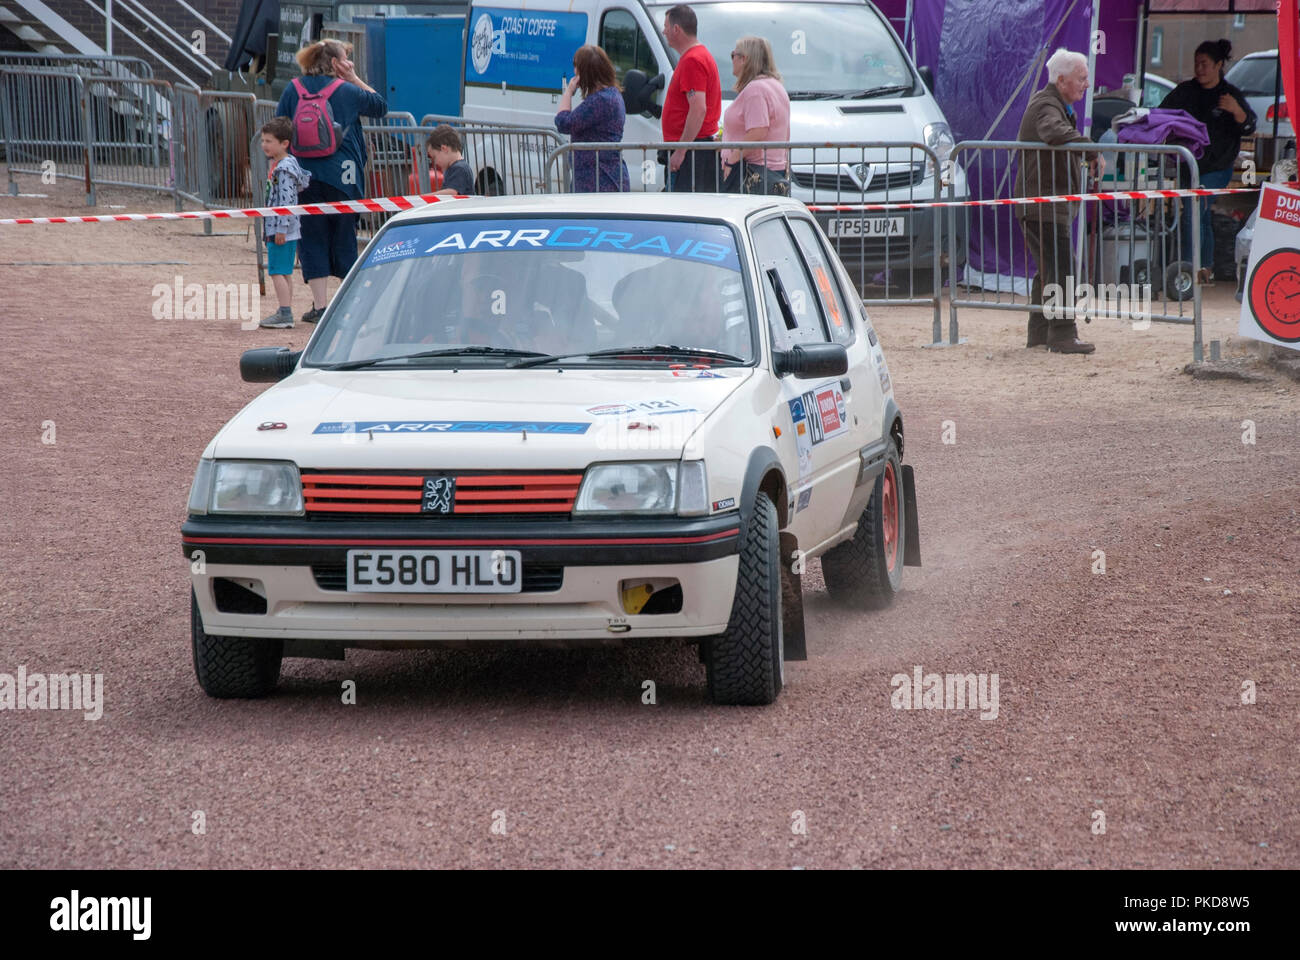 The 1988 White Peugeot 205 of Jamie Stewart Argyll Rally Dunoon 2018 front left nearside passenger side view of white rally prepared sports saloon car - Stock Image